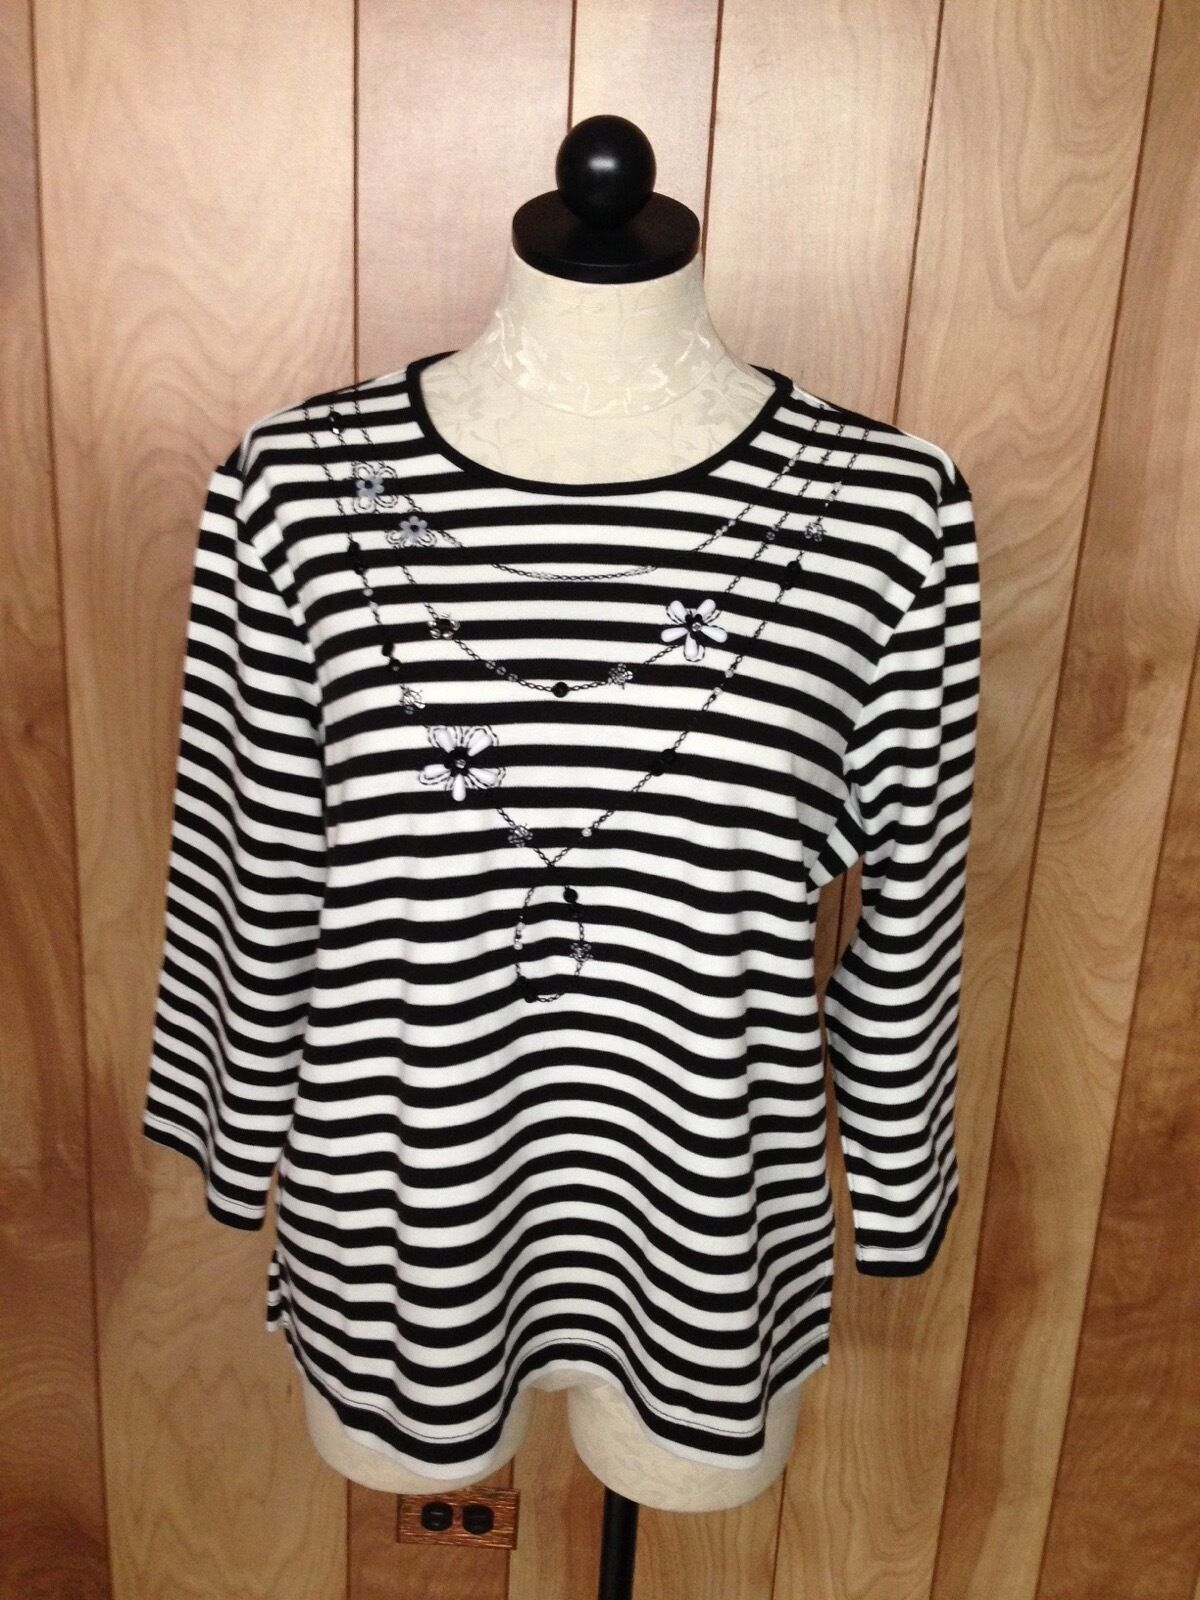 WOMEN'S ALFRED DUNNER STRIPED TOP-SIZE  MEDIUM